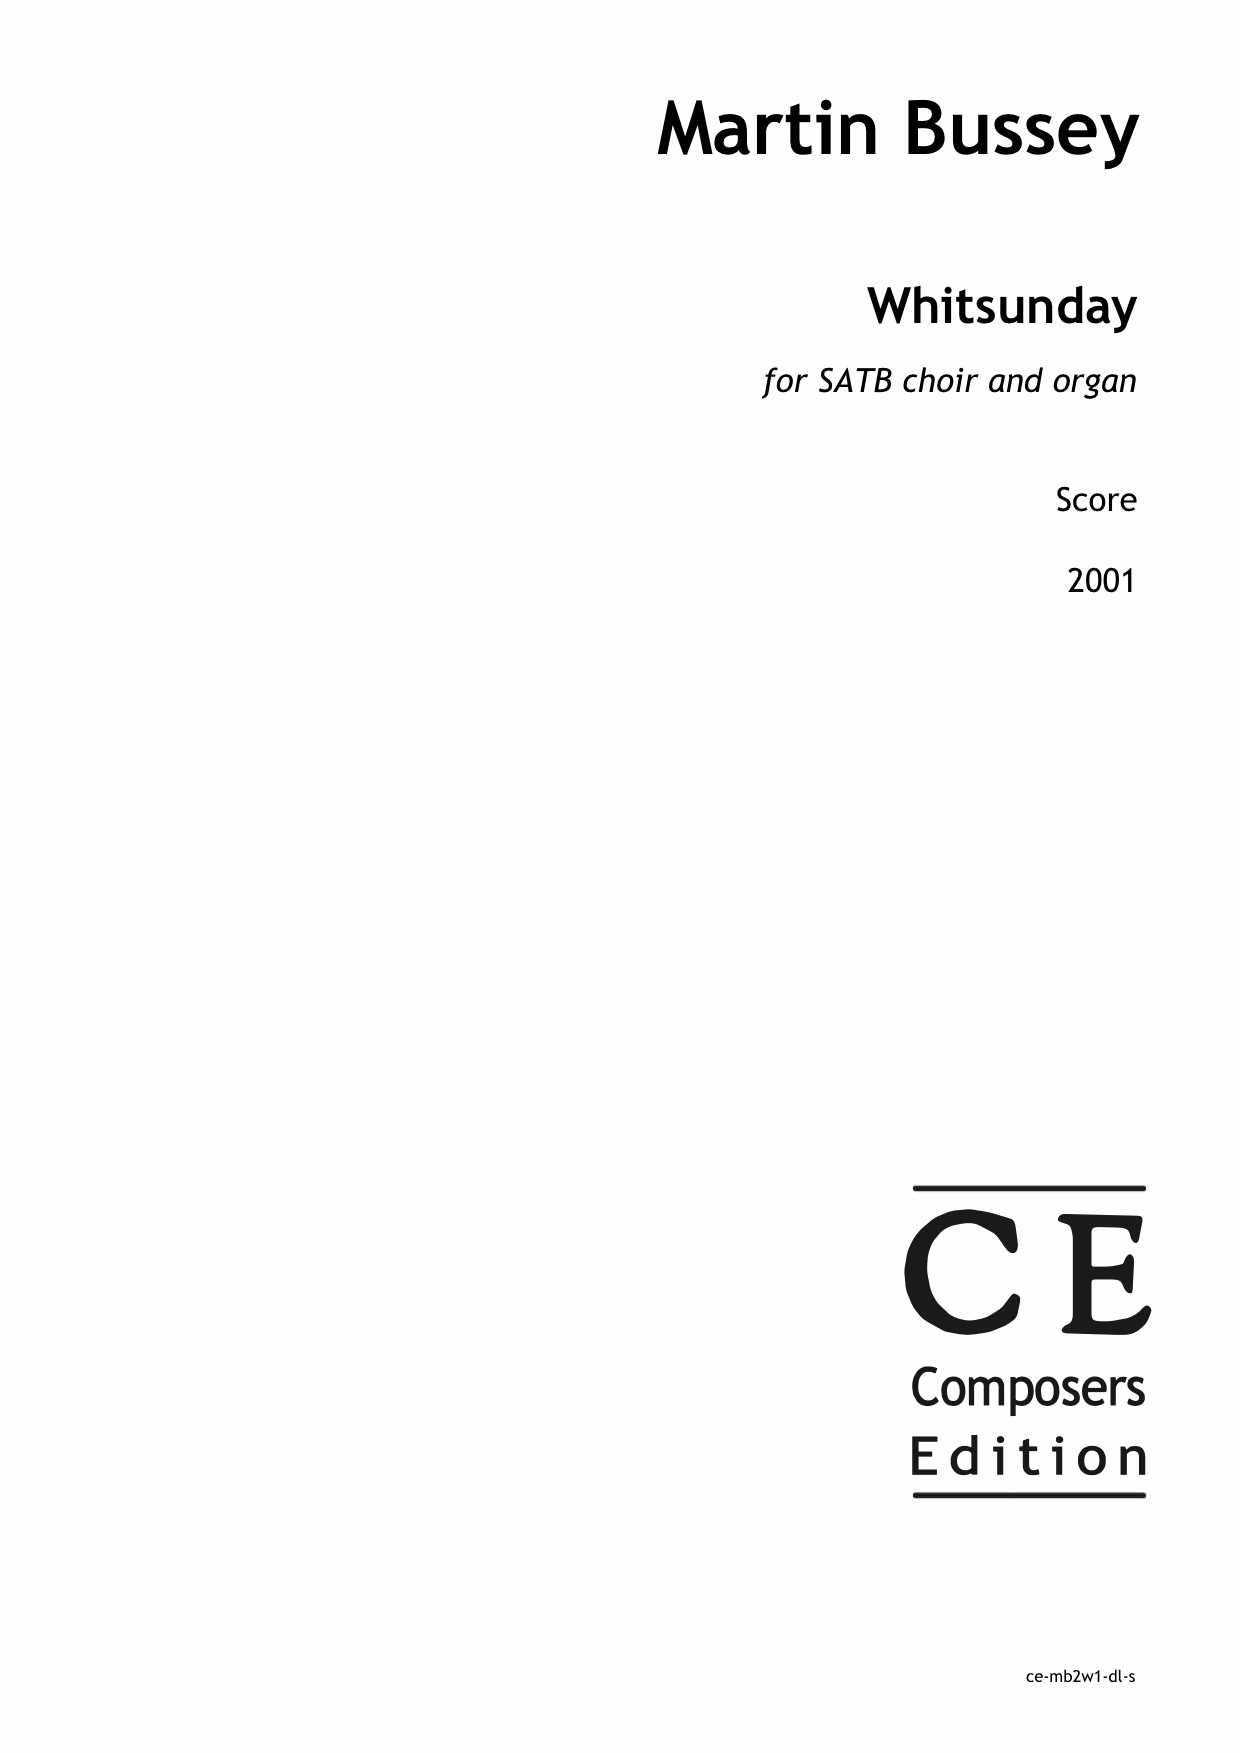 Martin Bussey: Whitsunday for SATB choir and organ